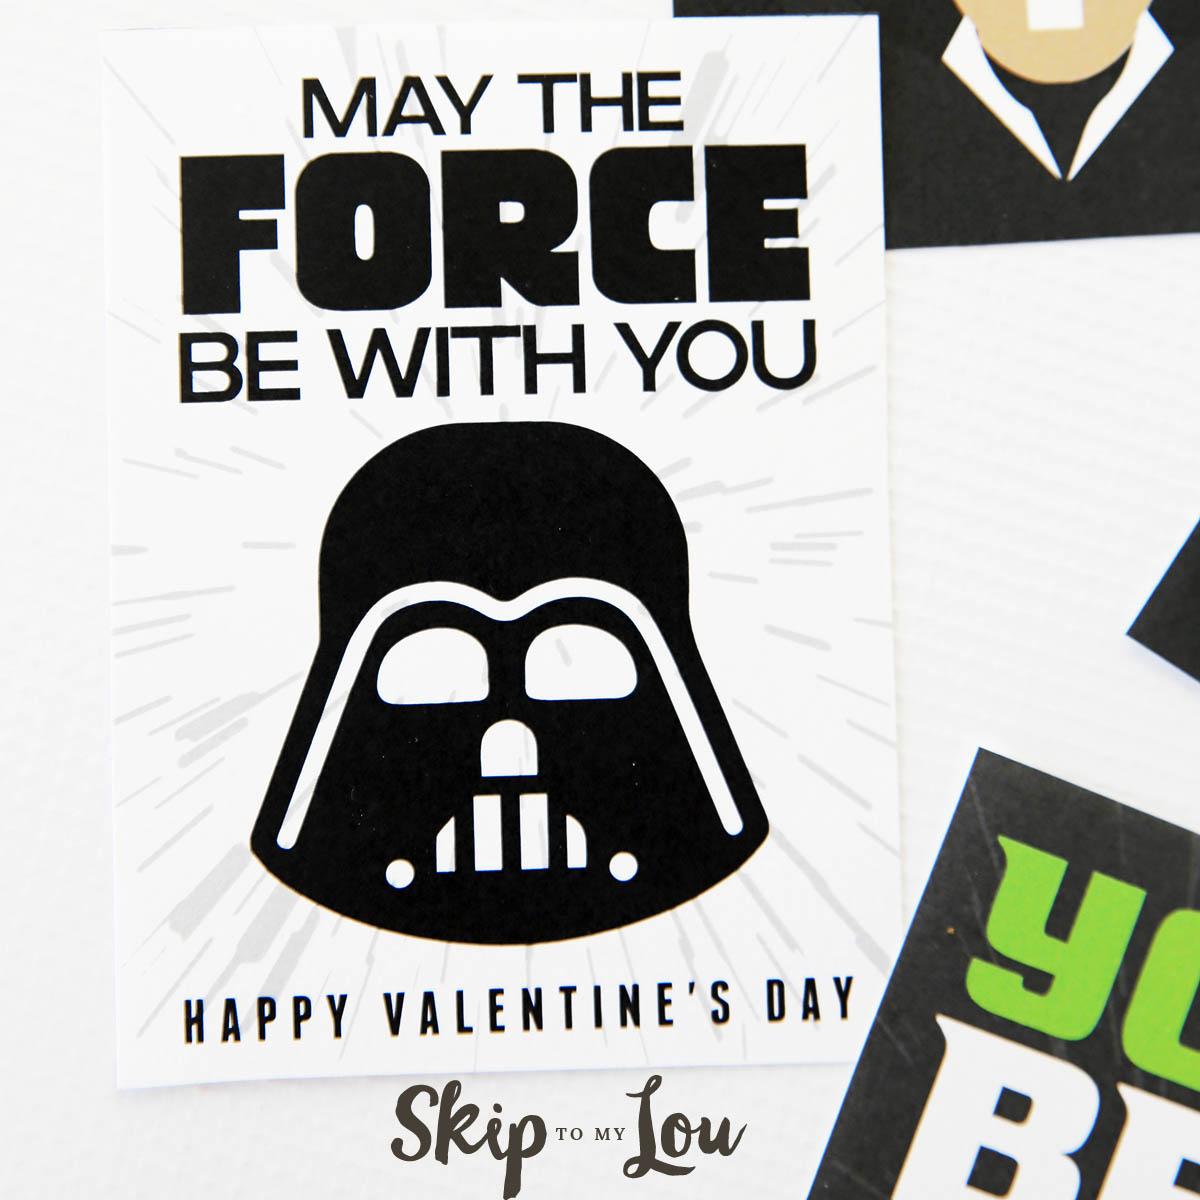 photograph regarding Printable Star Wars Images named The Least difficult totally free printable Star Wars Valentines - therefore amazing